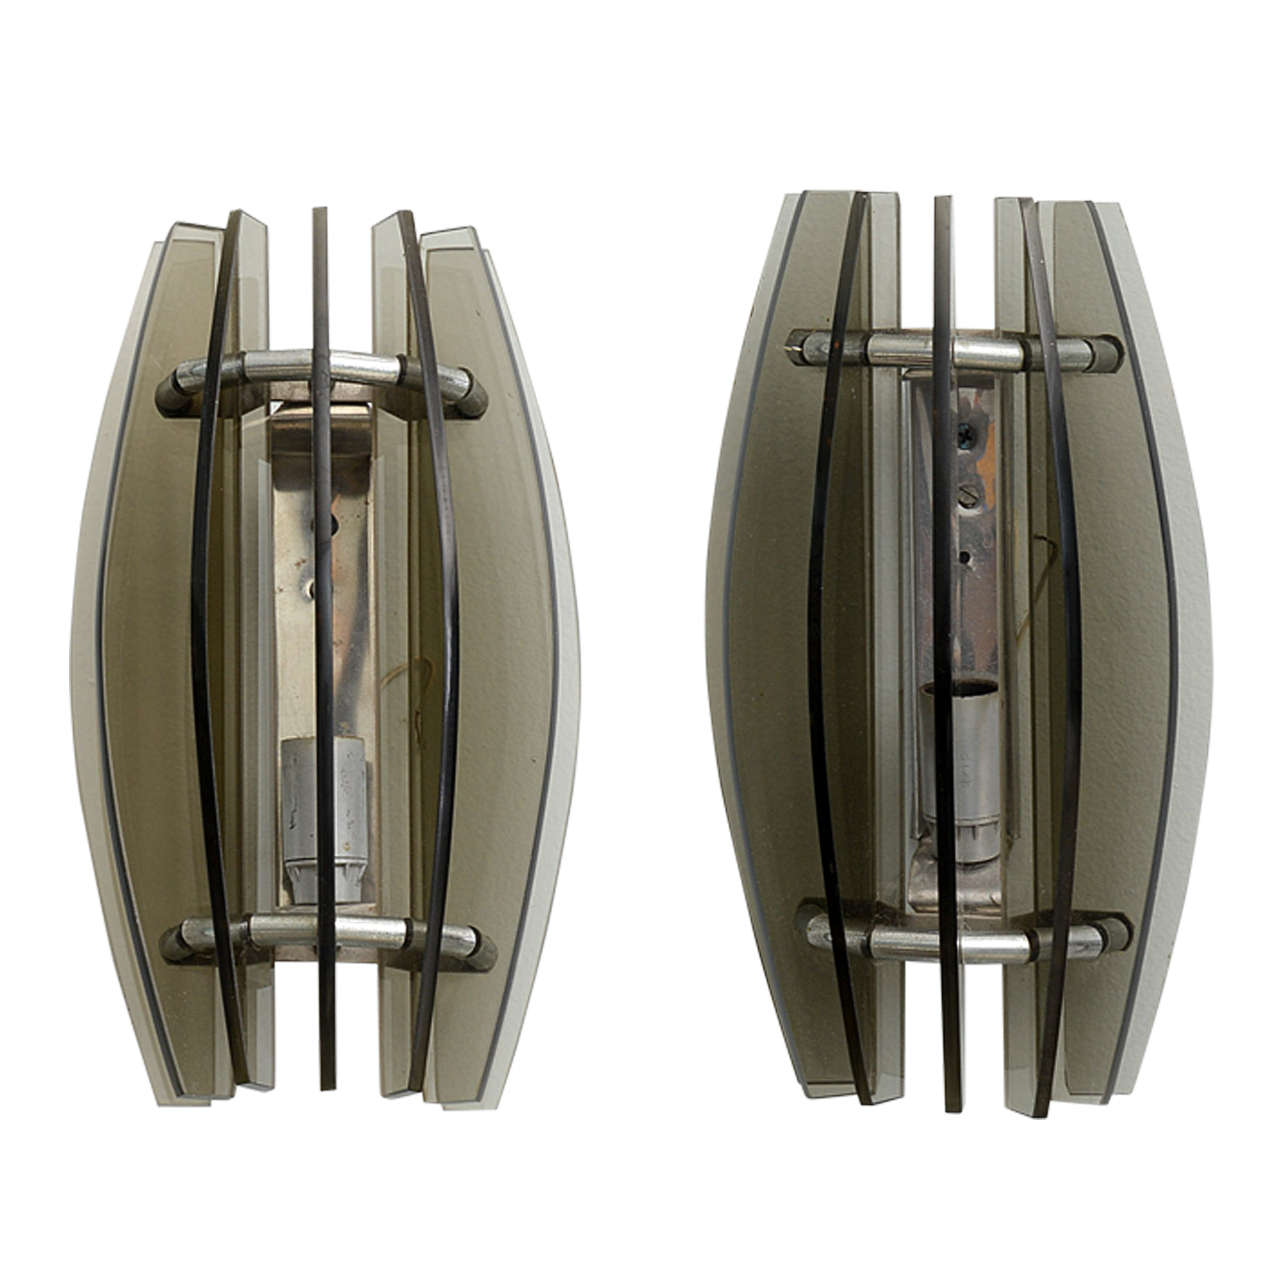 Pair of Italian Modern Smoked Glass Wall Lights, Manner of Fontana Arte For Sale at 1stdibs